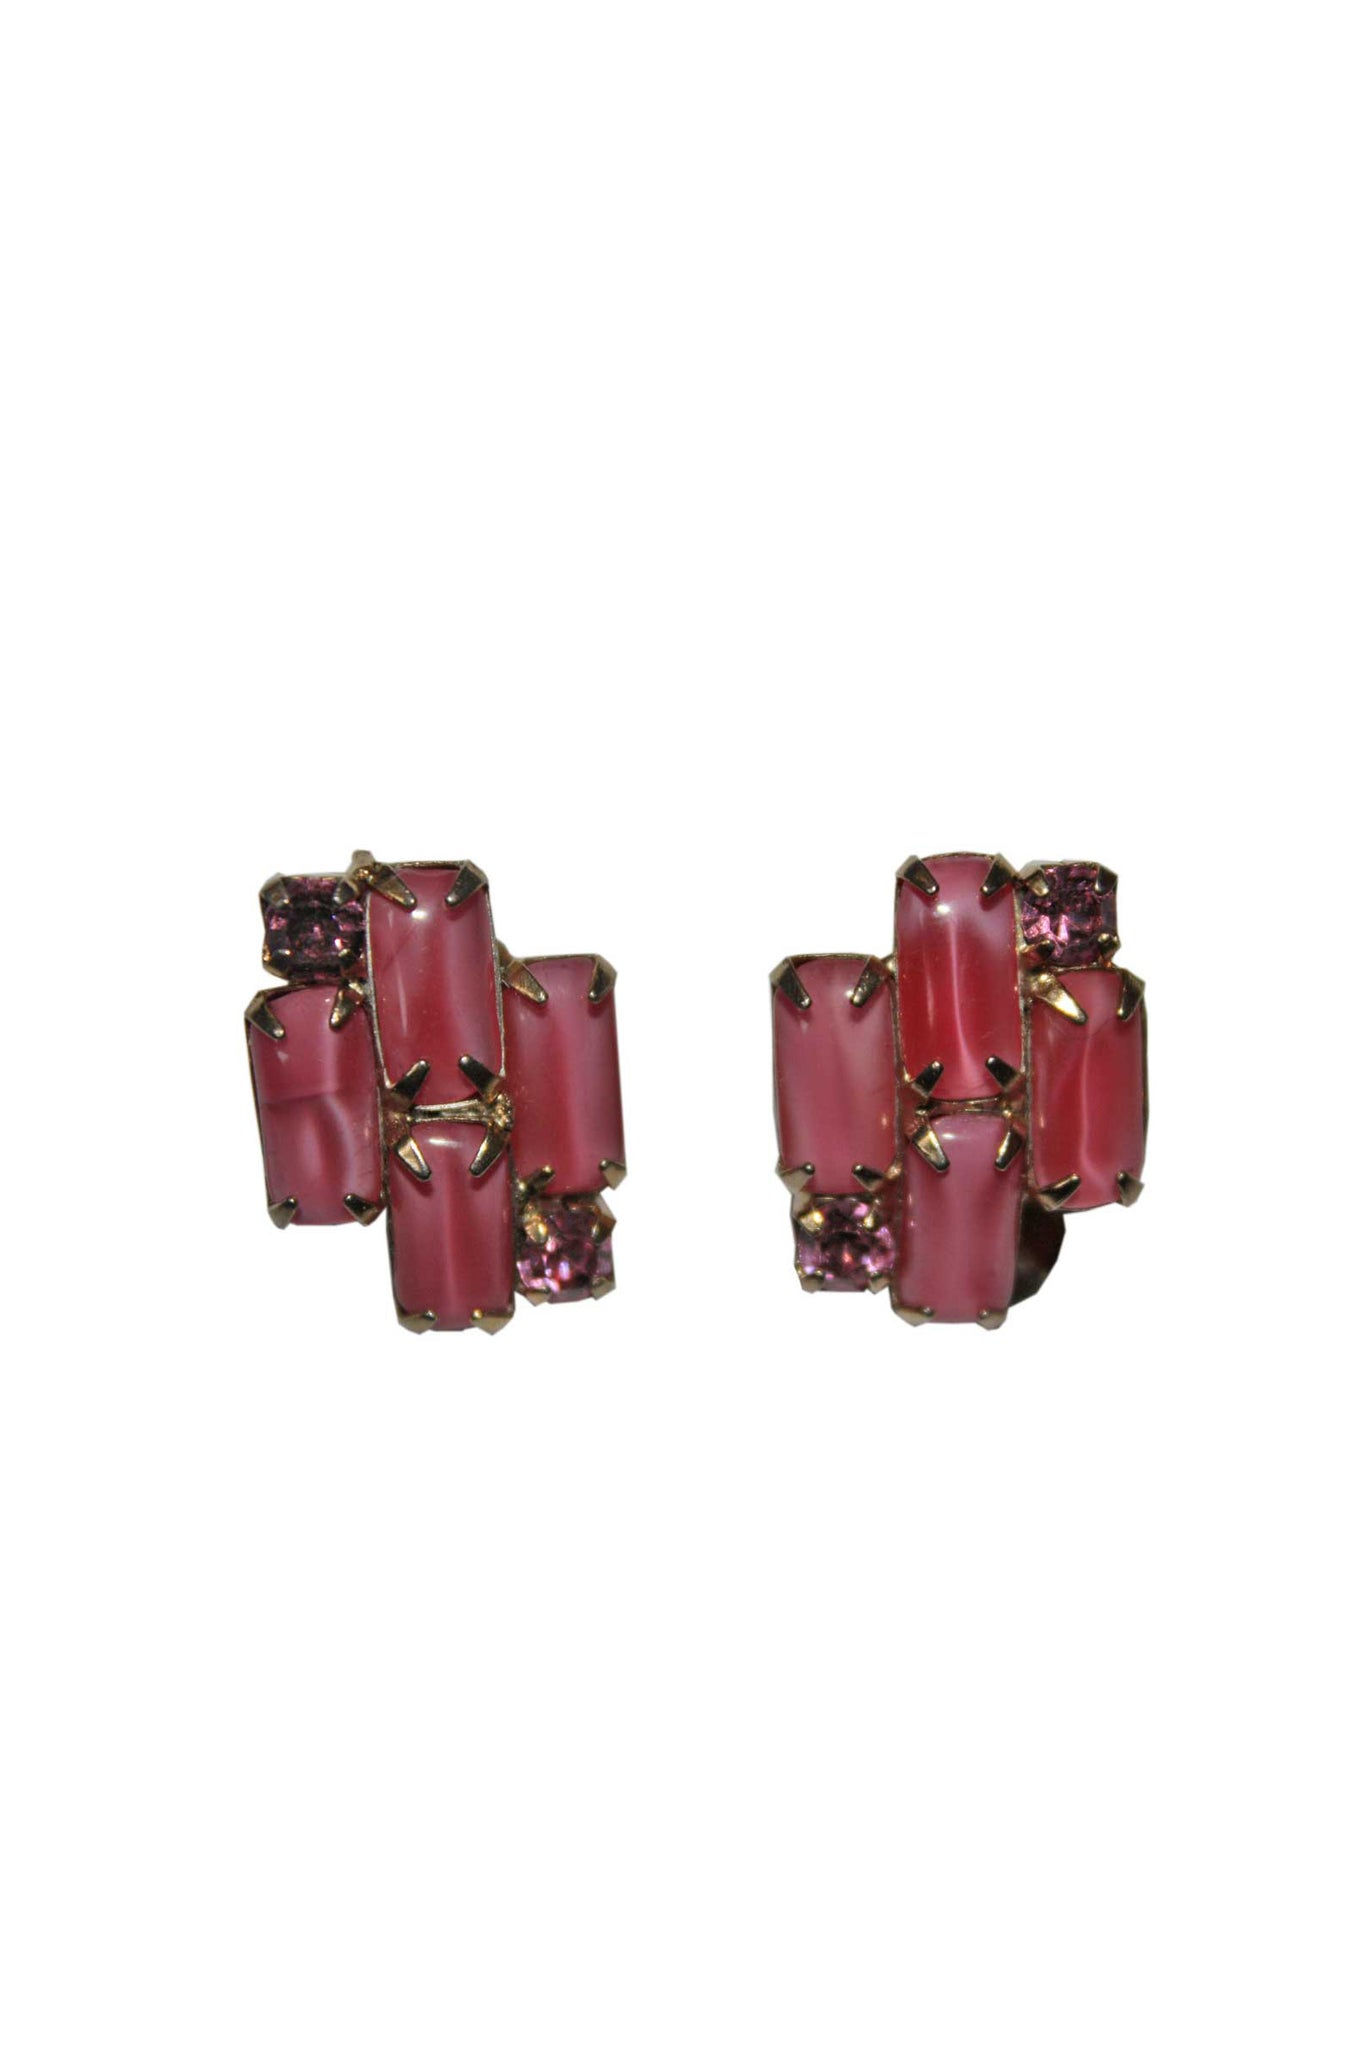 Clip on pink vintage earrings - SoLovesVintage